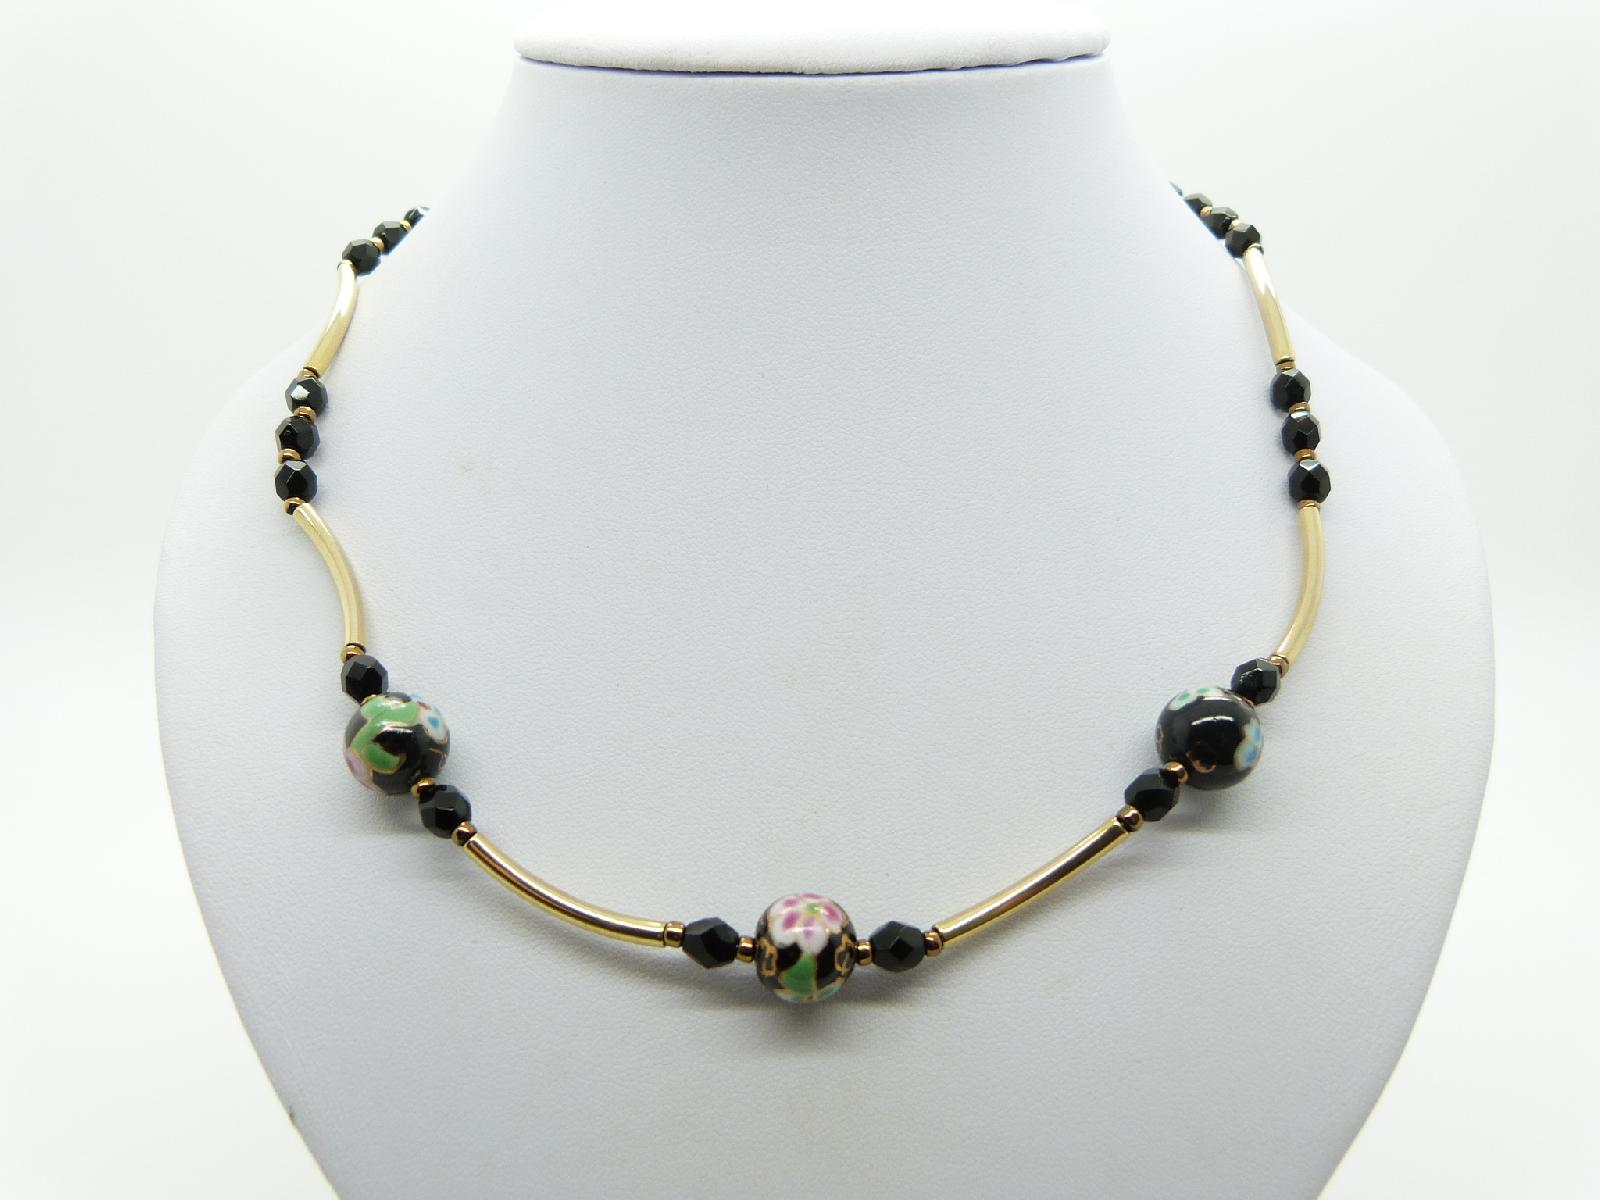 Vintage Redesigned 1950s Blac Murano Glass Flower Bead Gold Link Necklace Unique 50cms